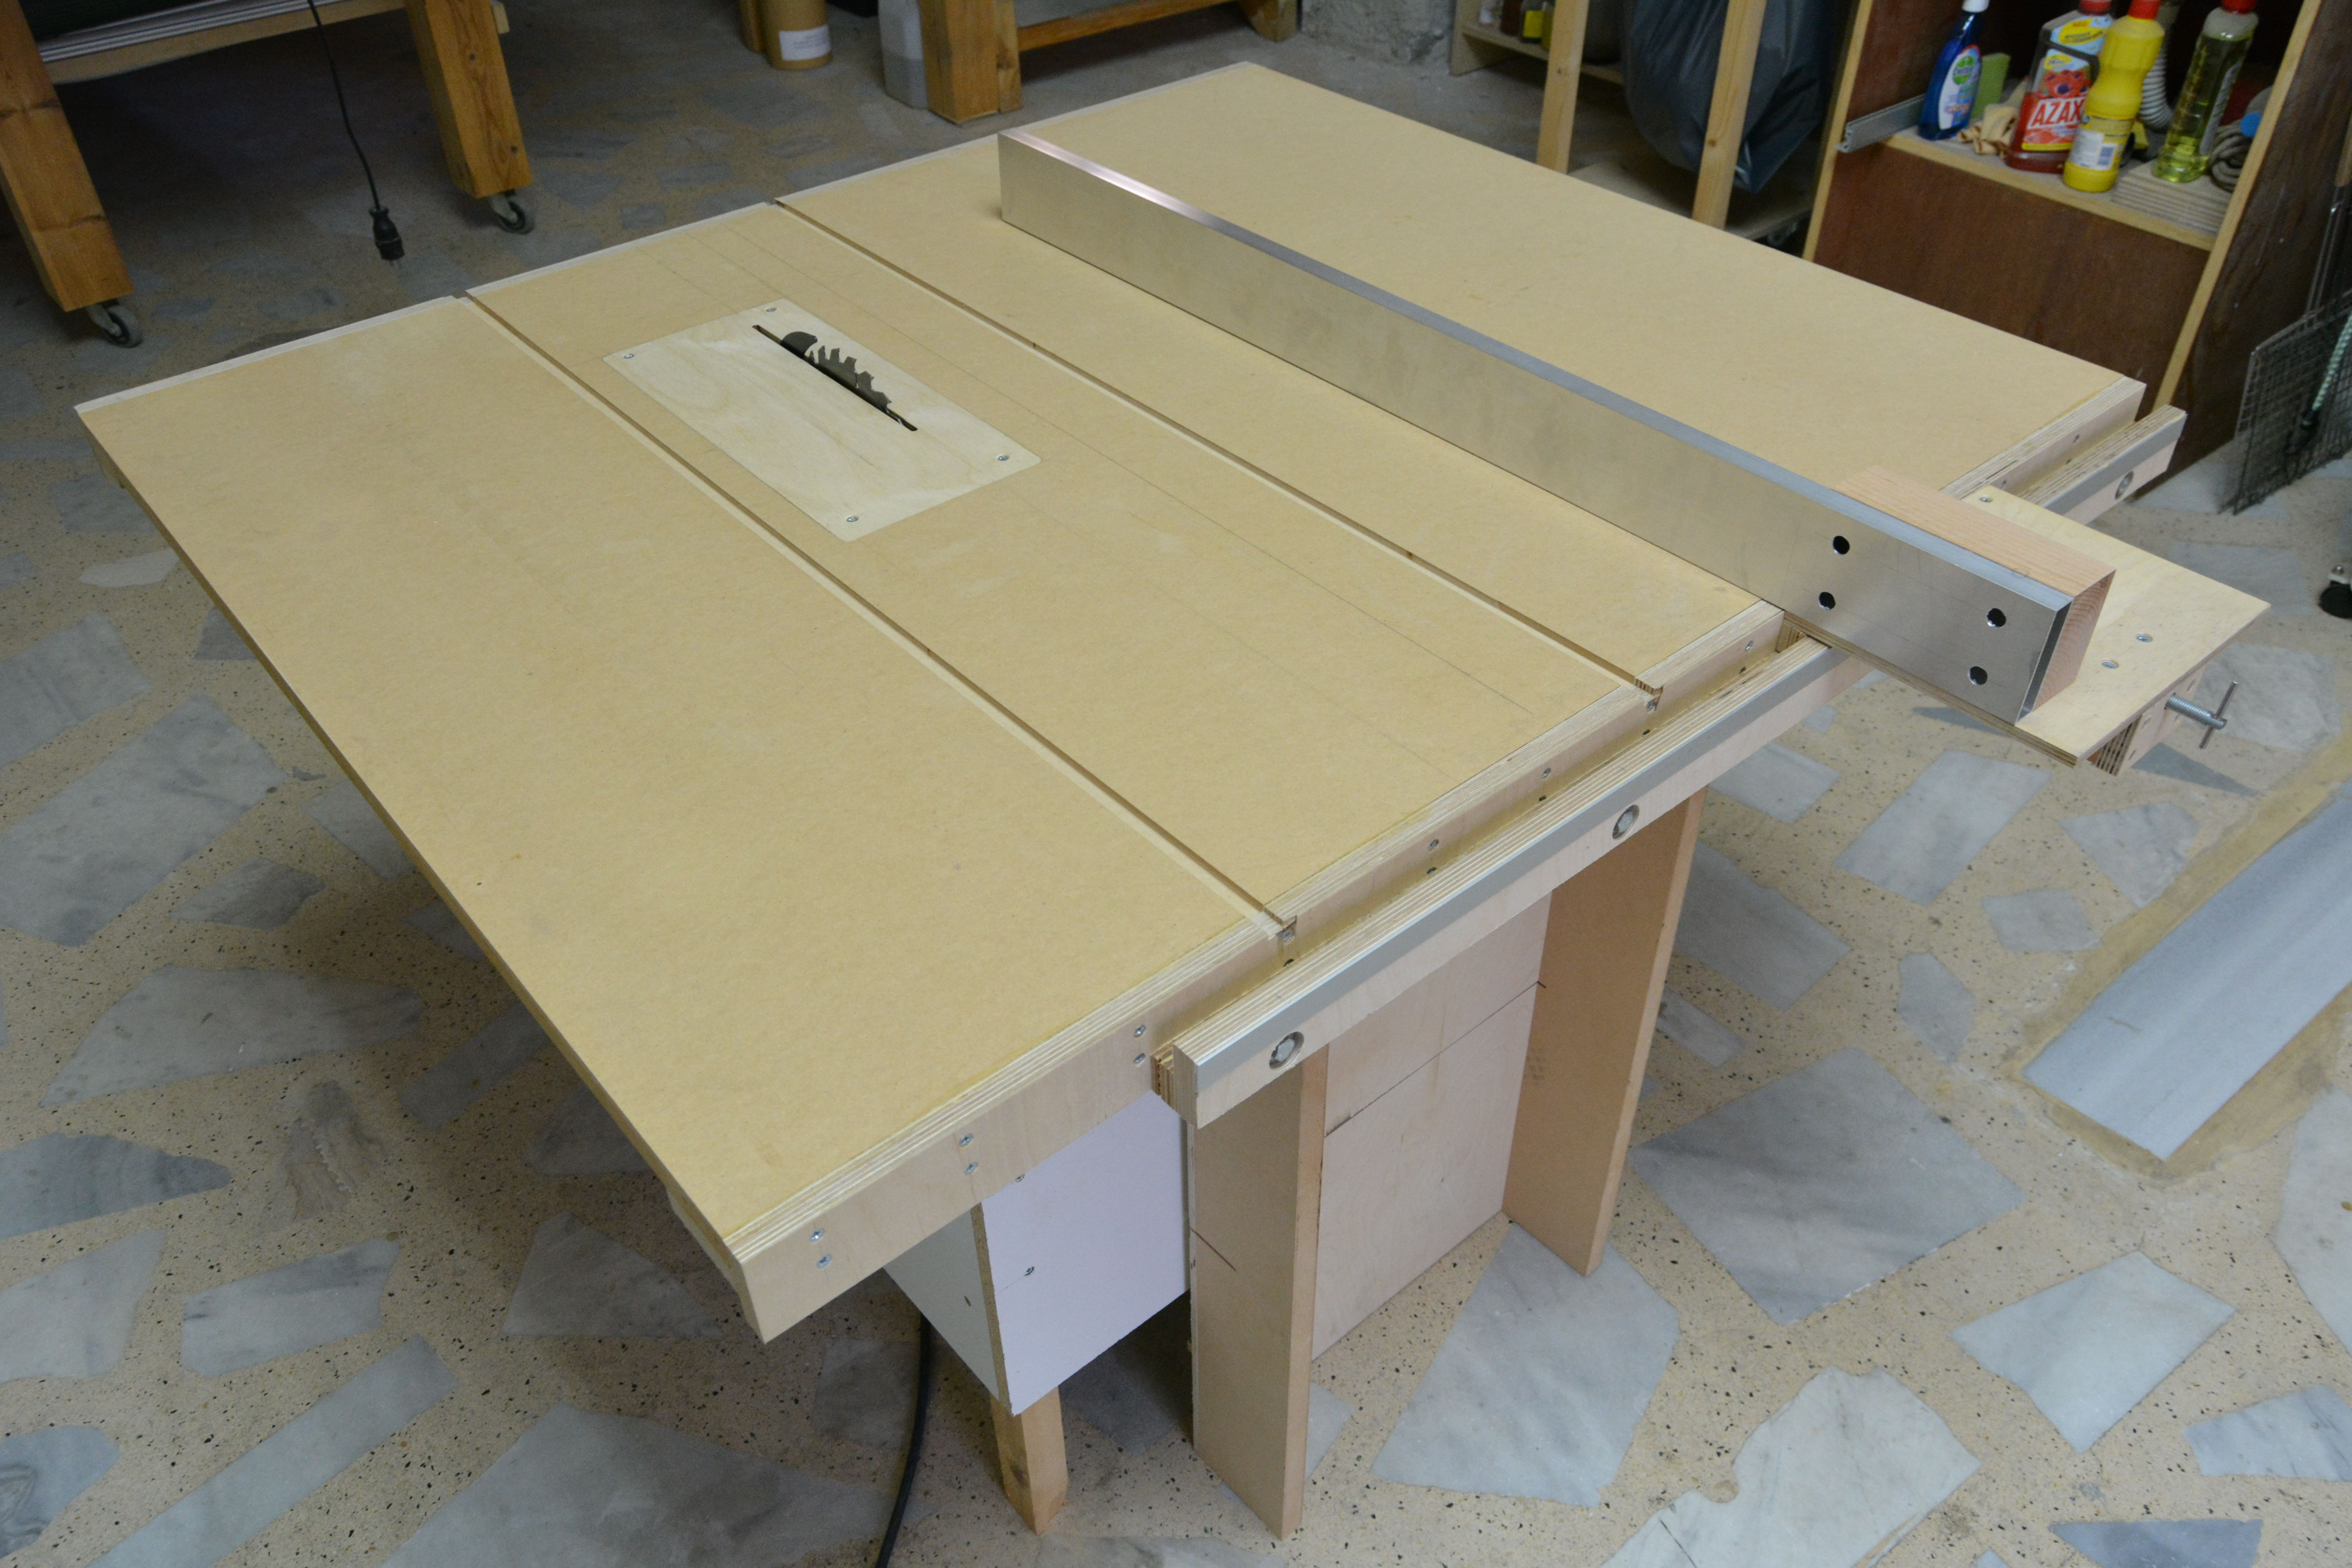 Best ideas about DIY Table Saw Plans . Save or Pin New DIY circular table saw … Now.